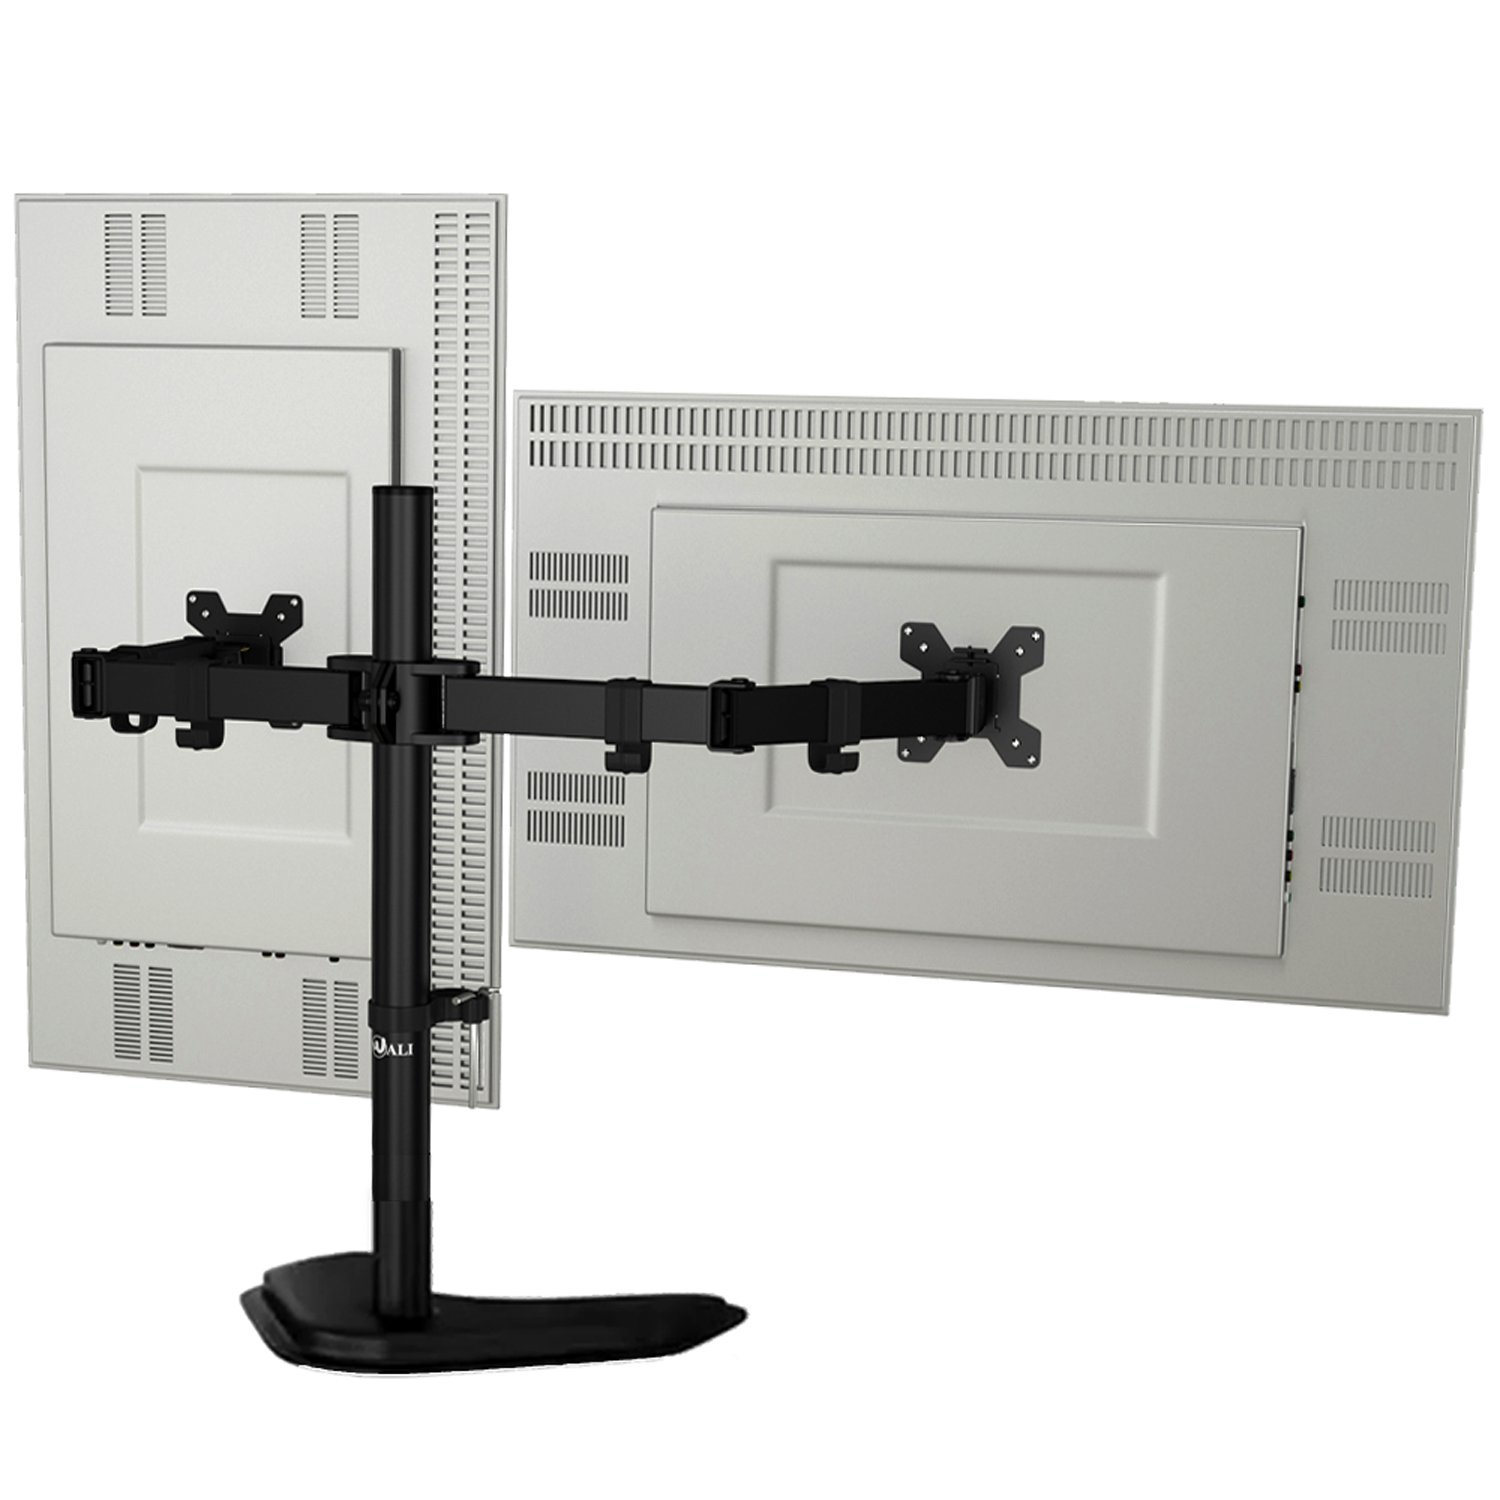 """WALI Free-Standing Dual LCD Monitor Fully Adjustable Desk Mount Fits Two Screens up to 27"""", 22 lbs. Weight Capacity per Arm (MF002), Black by WALI (Image #1)"""